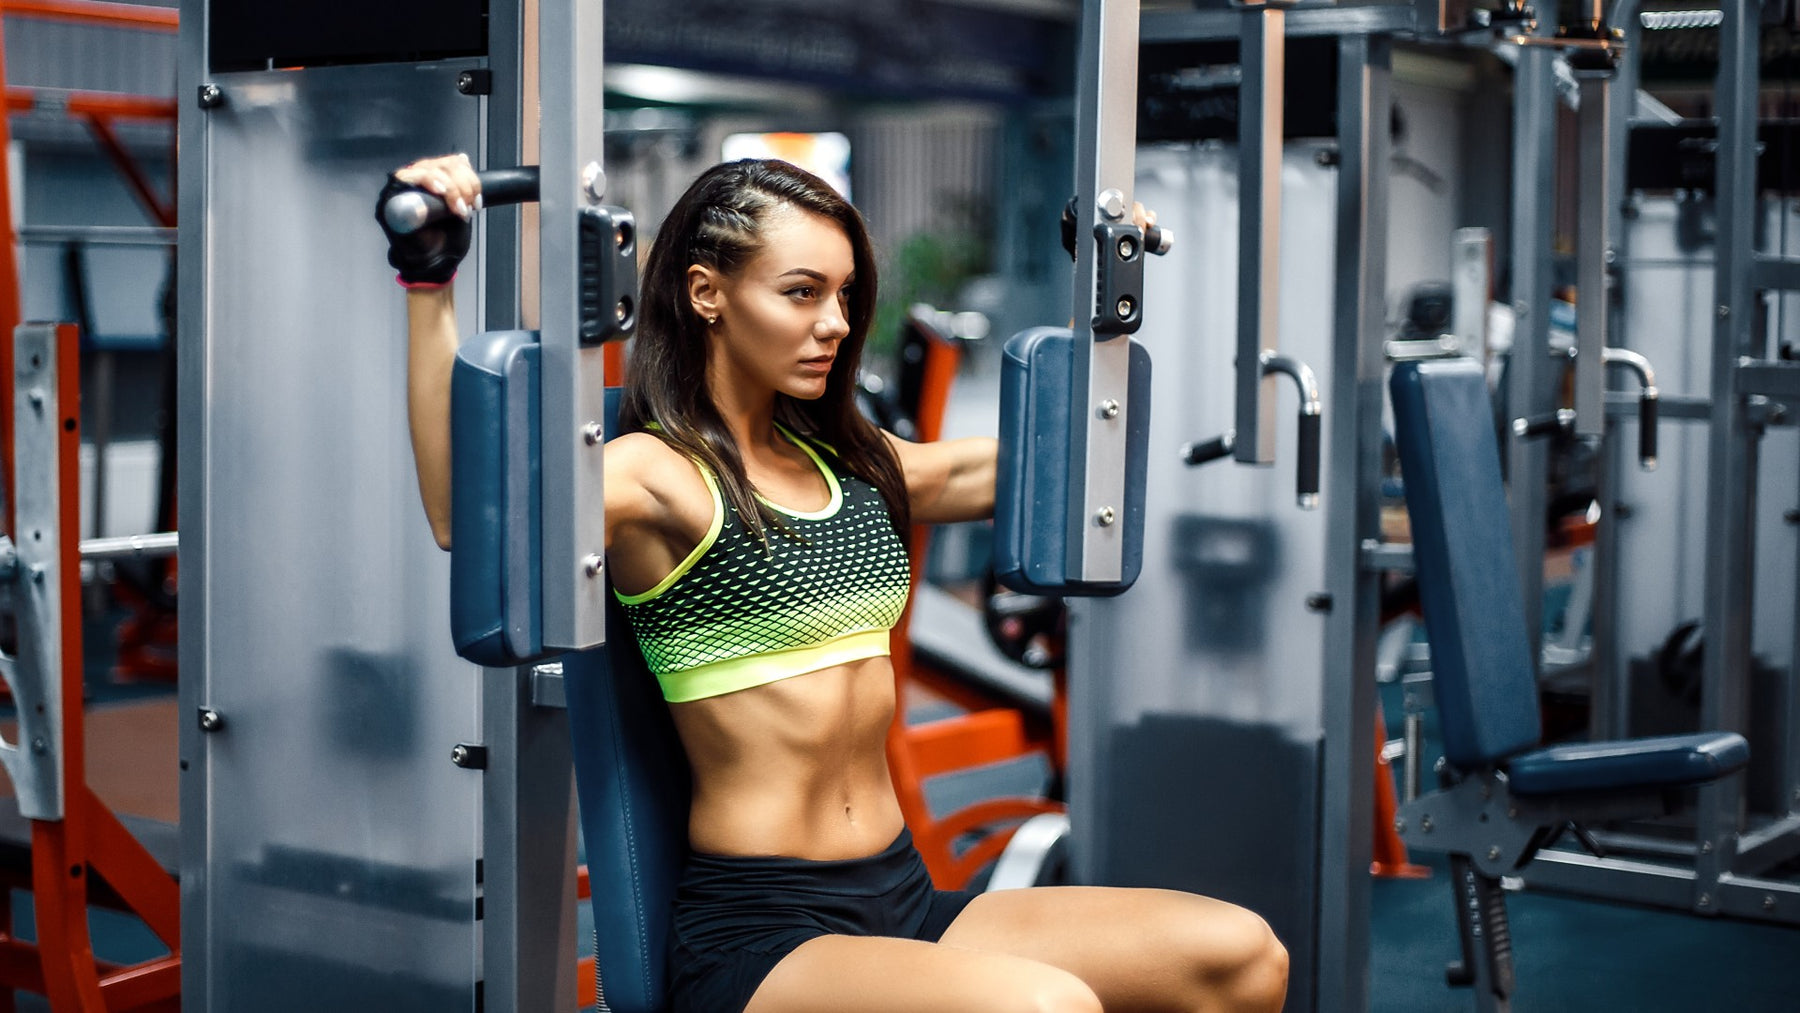 "Breasts and Lifting - Tips to Manage & Protect ""Your Girls"" at the Gym"